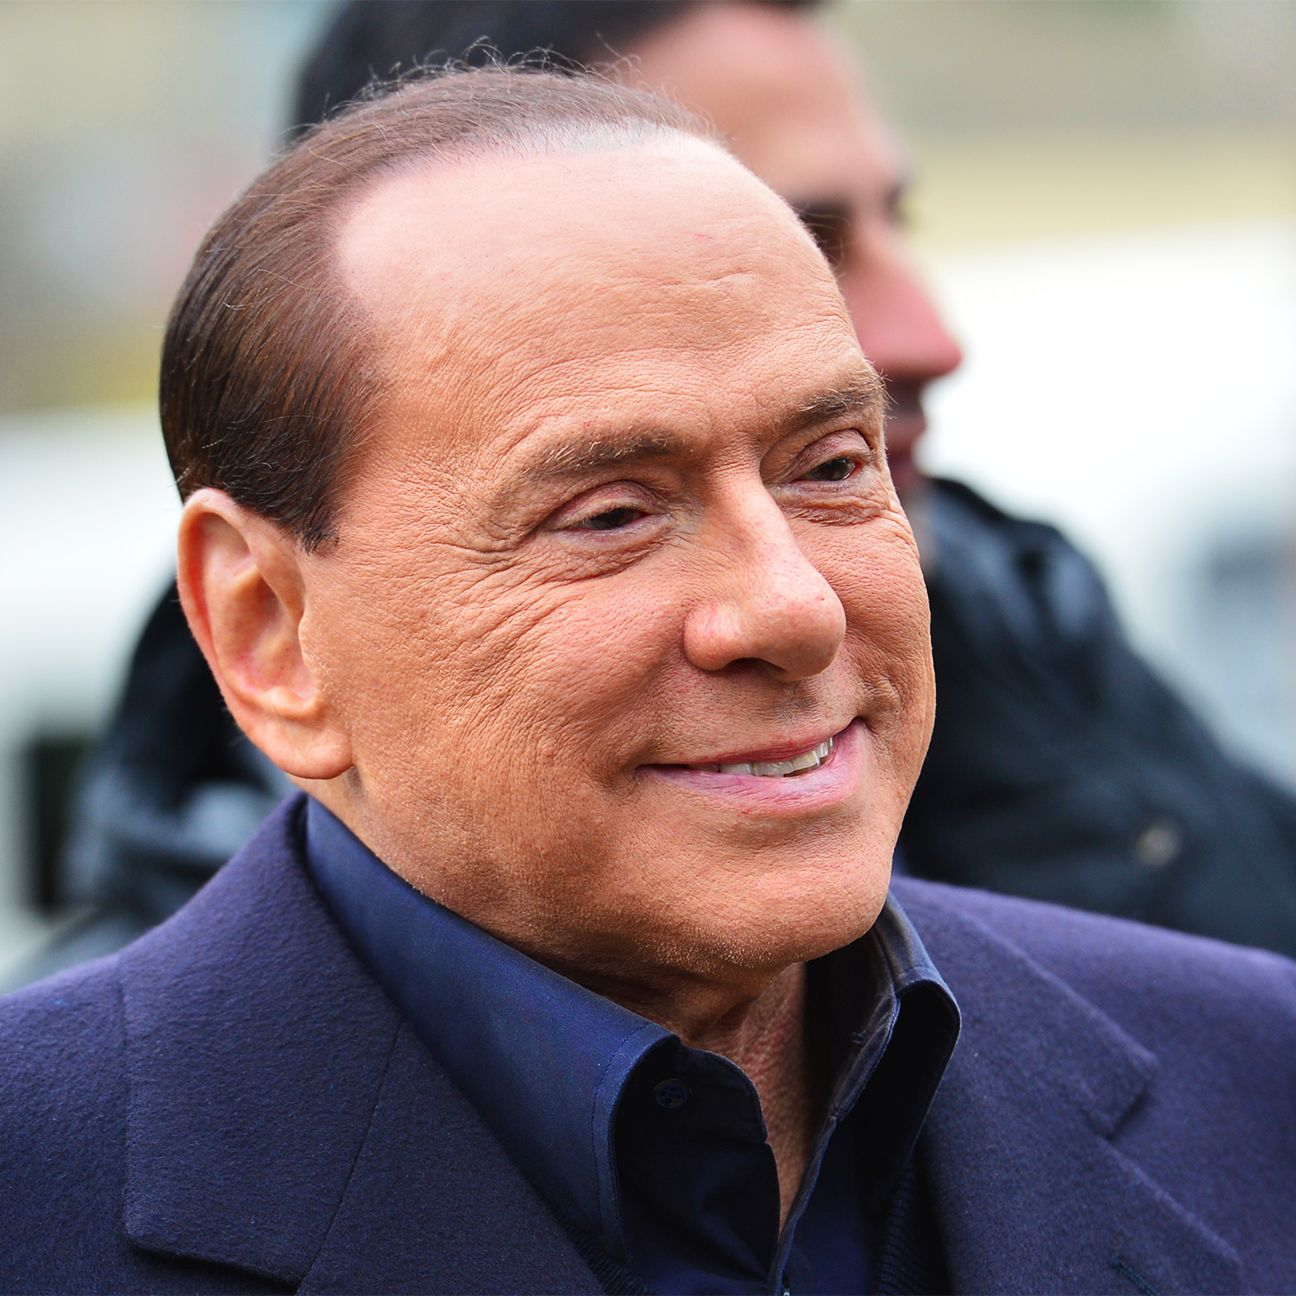 With a crucial summer looming for Milan, owner Silvio Berlusconi has yet to decide on a final buyer of the club.